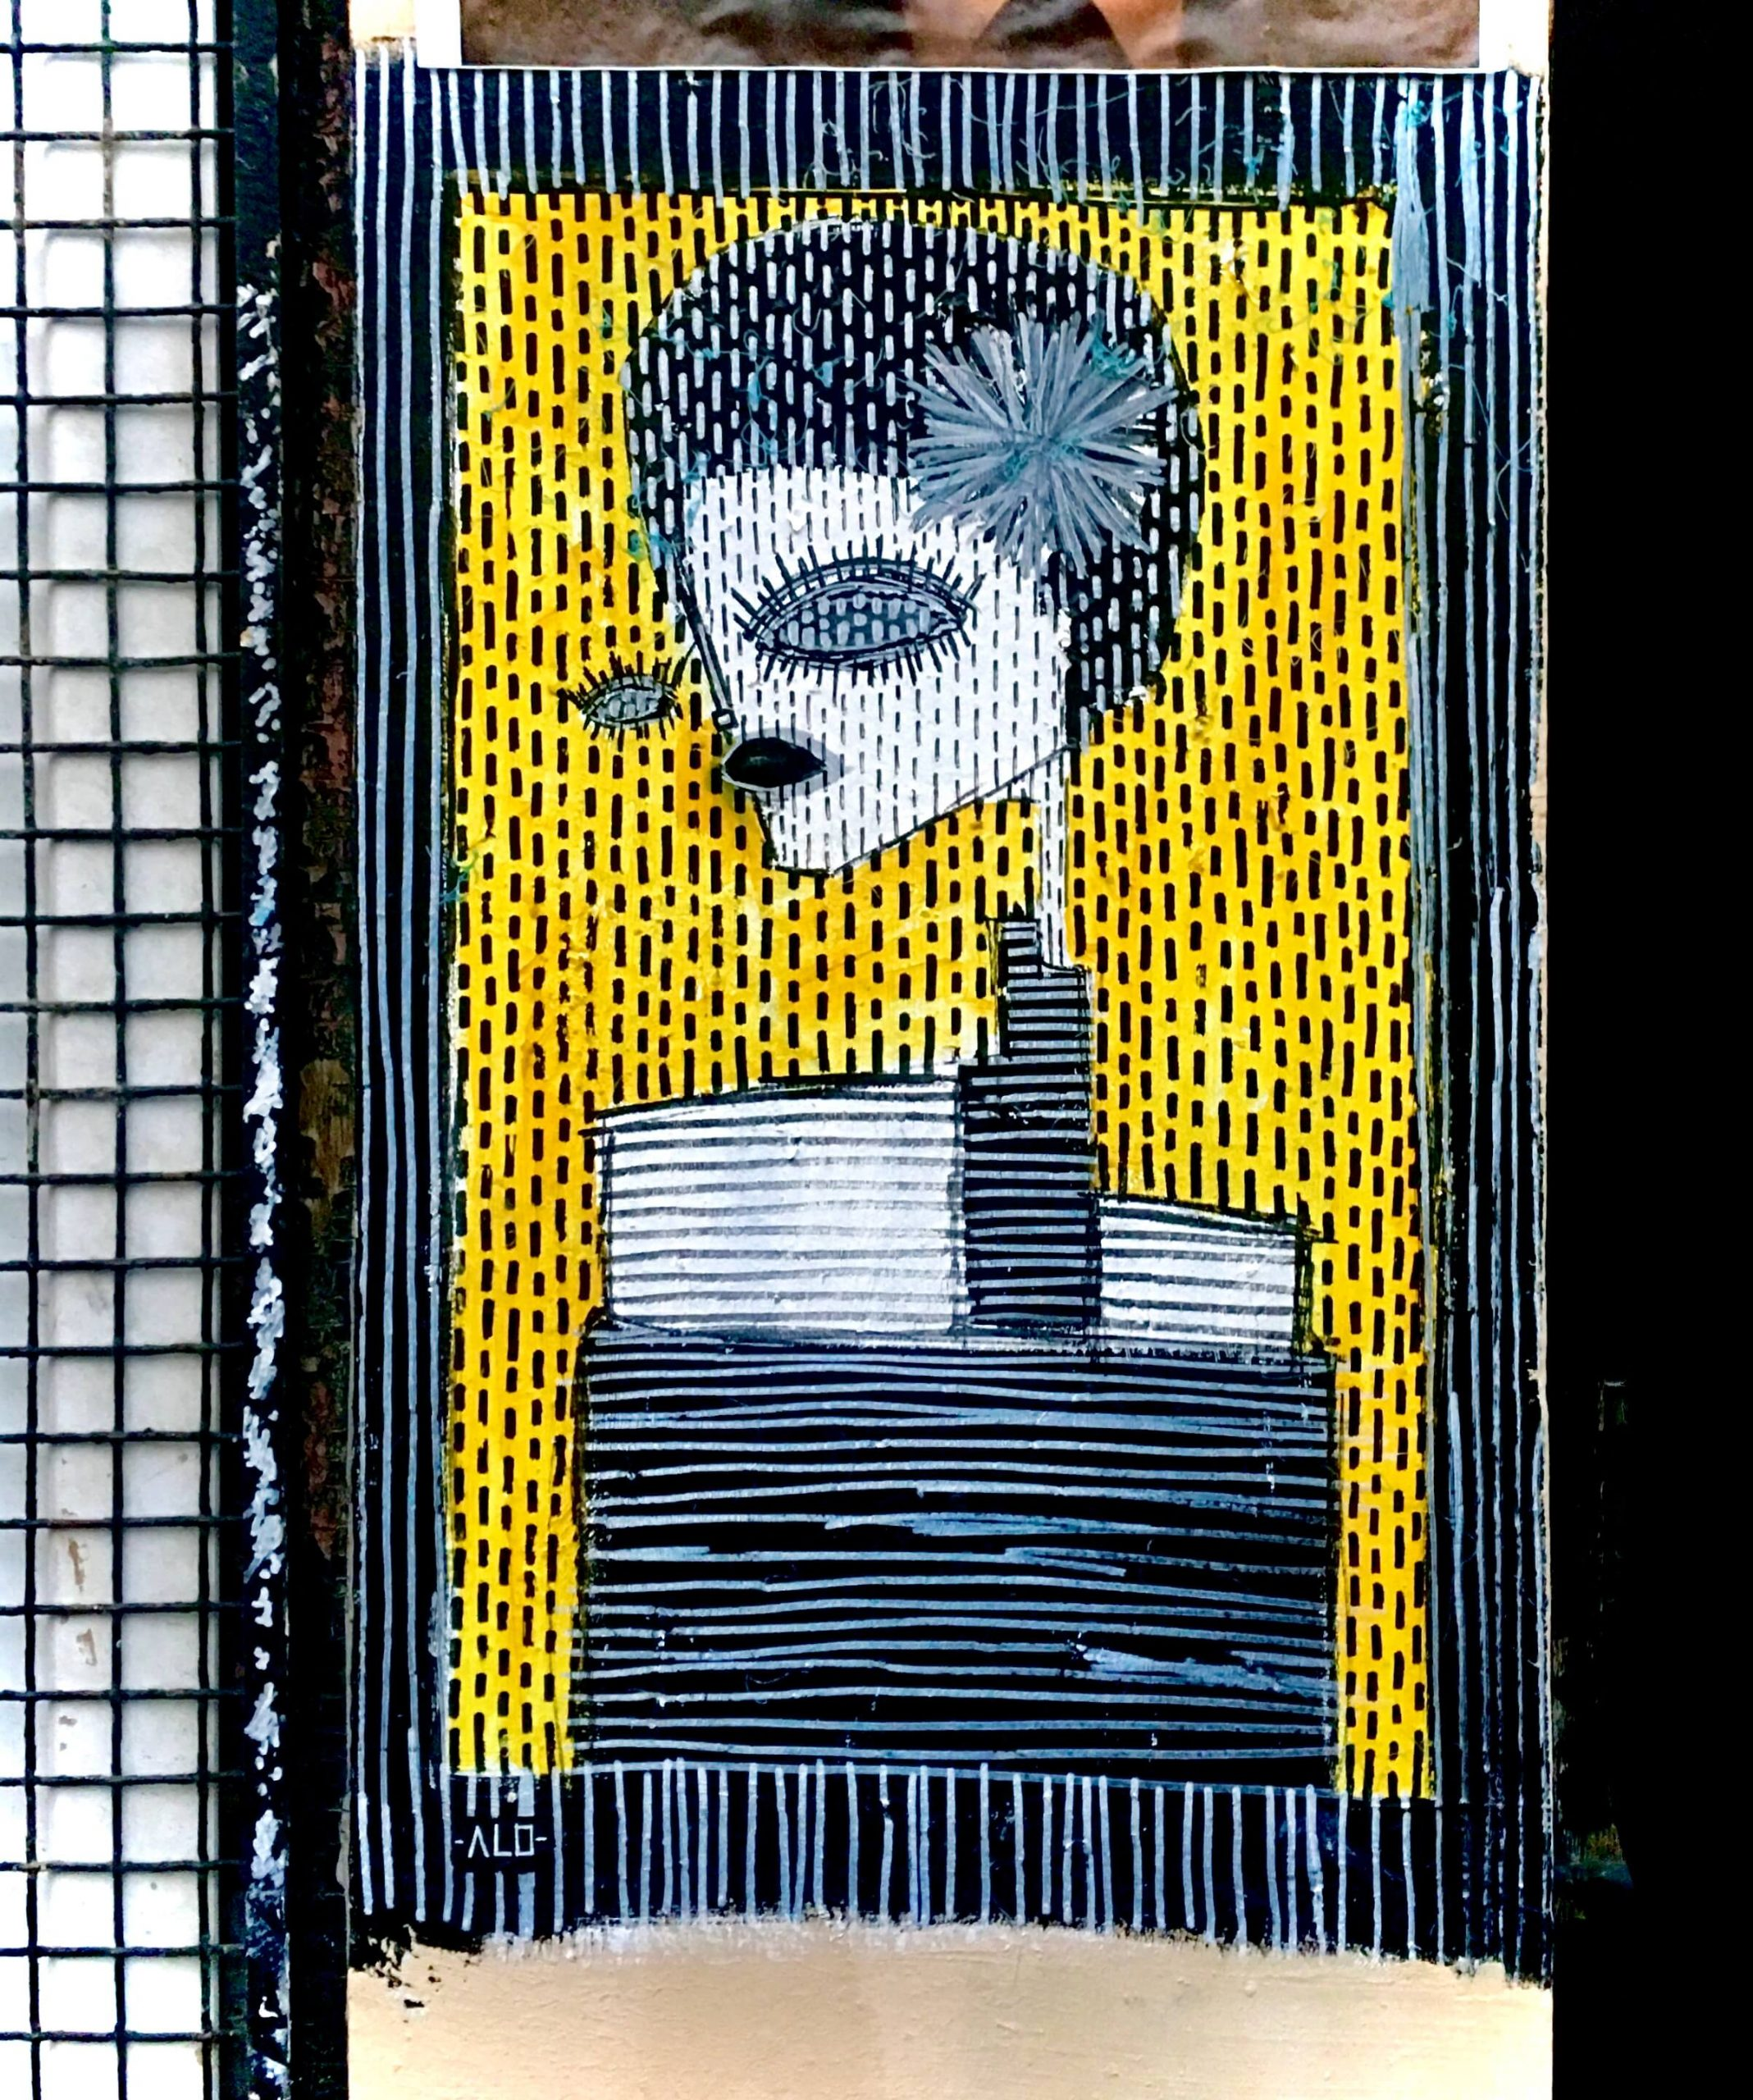 Surreal mosaic street art piece of an exaggerated female character in black and white with yellow background